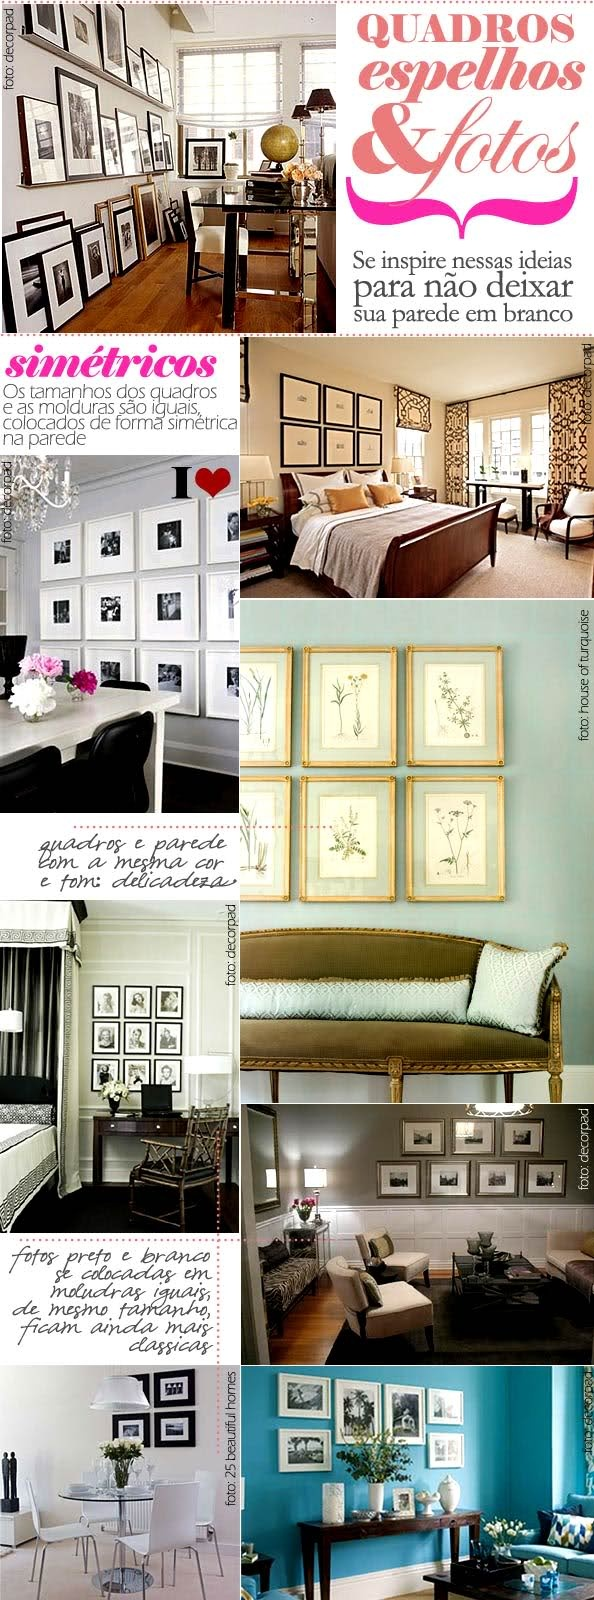 39 best Quadros images on Pinterest | Frames, Home decor and House ...